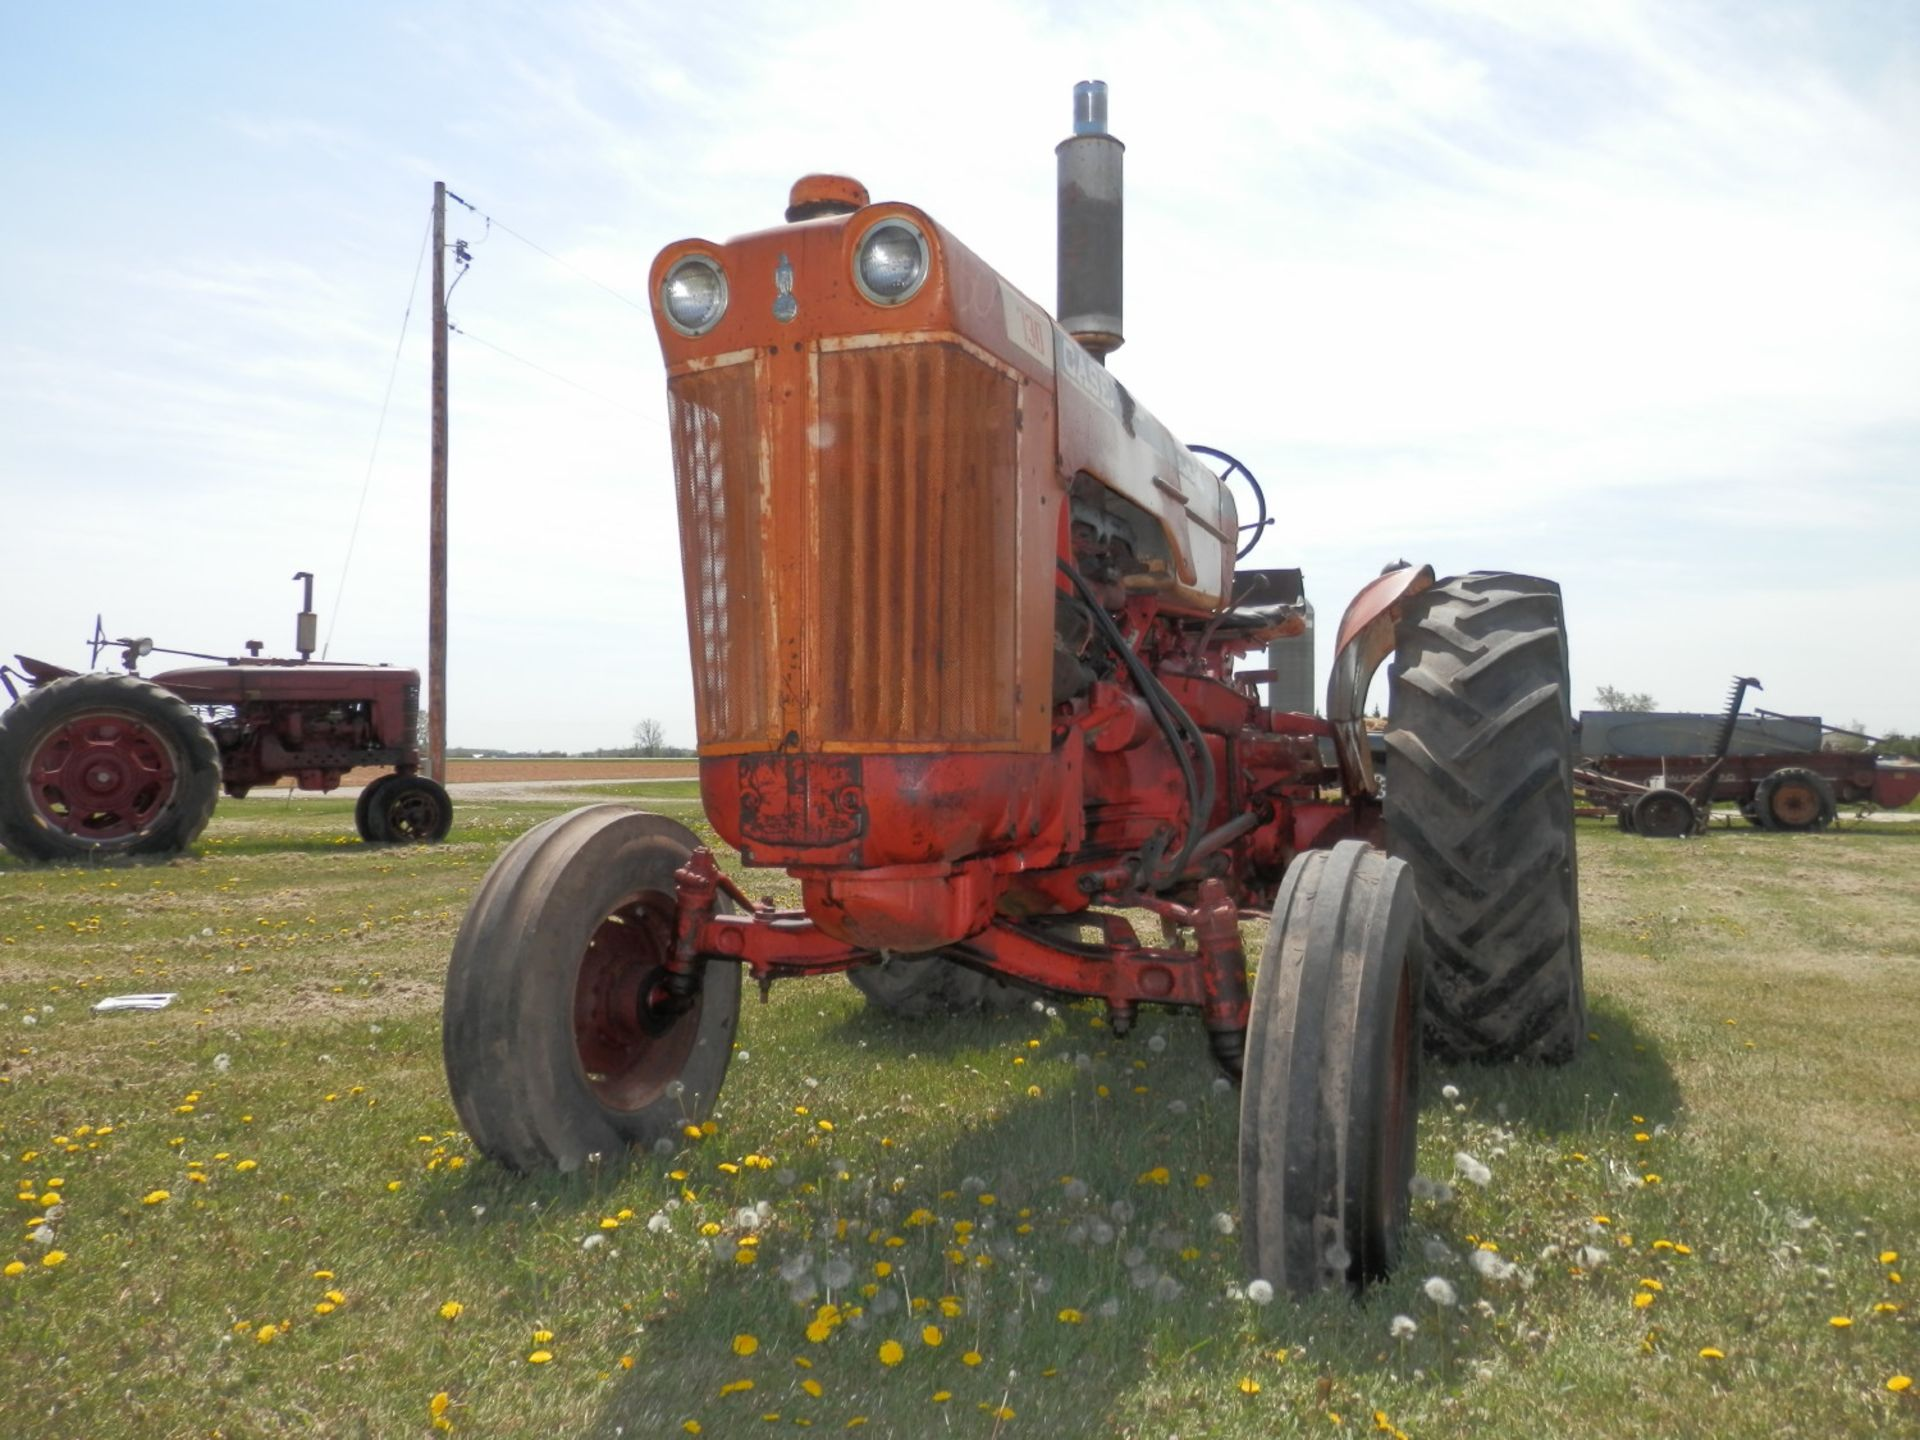 JI CASE 730 GAS TRACTOR - Image 4 of 10